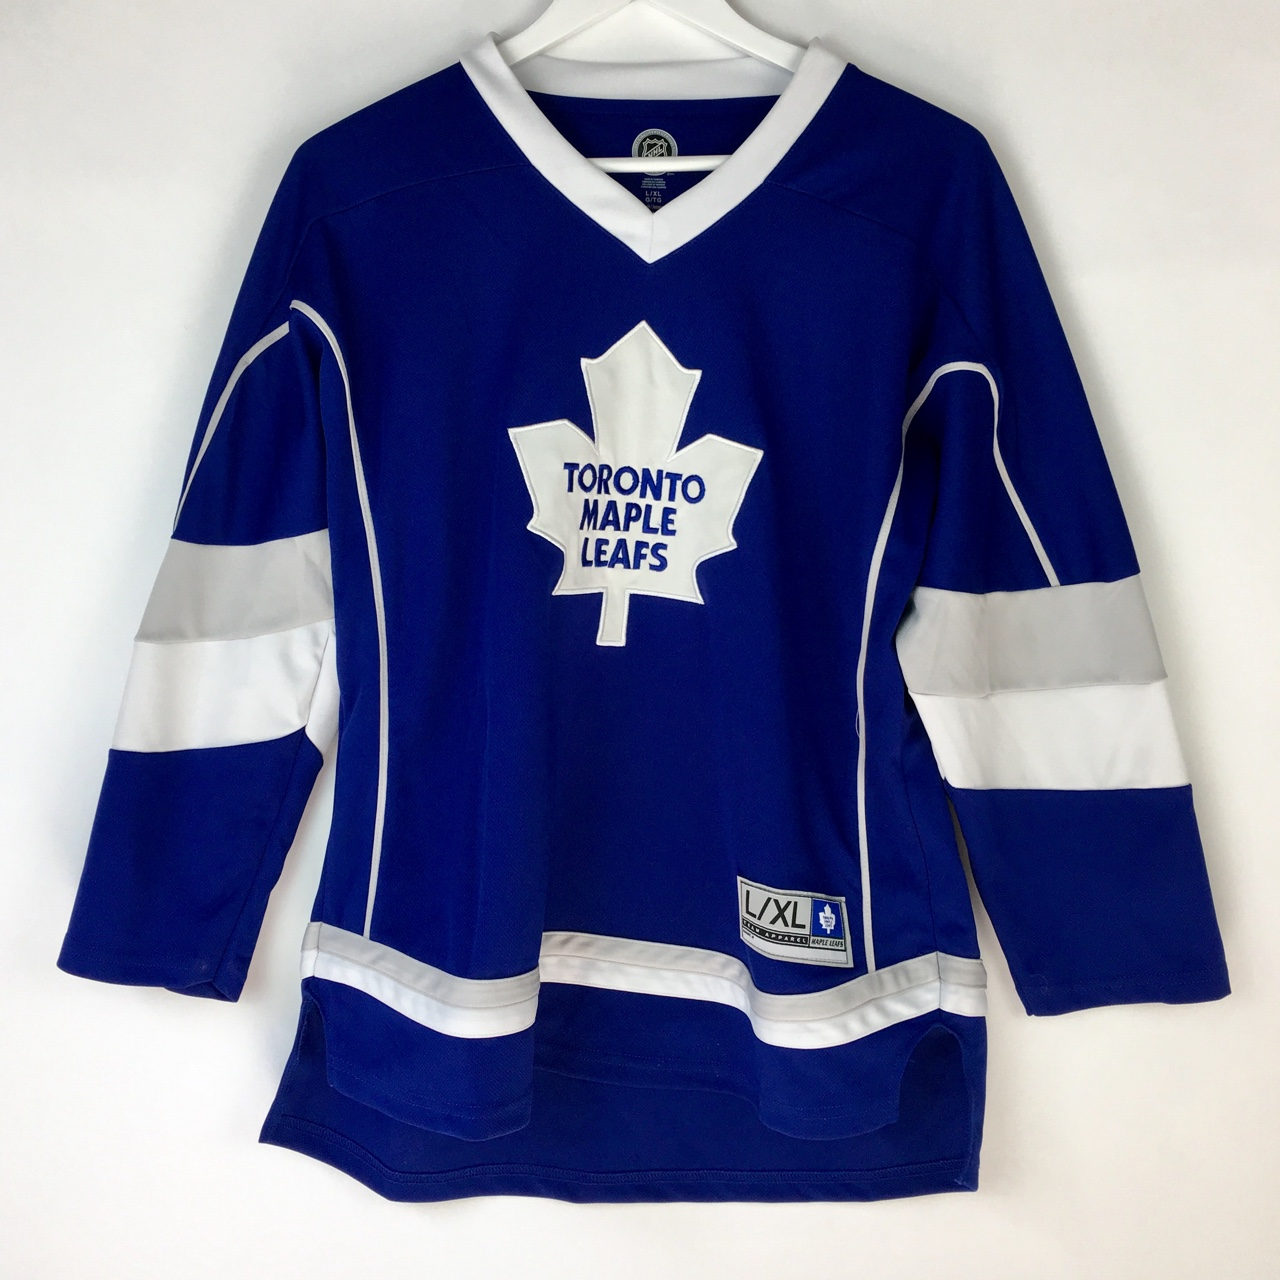 new style 67f7f 8e6ca Royal Blue Toronto Maple Leafs Jersey Official NHL... - Depop